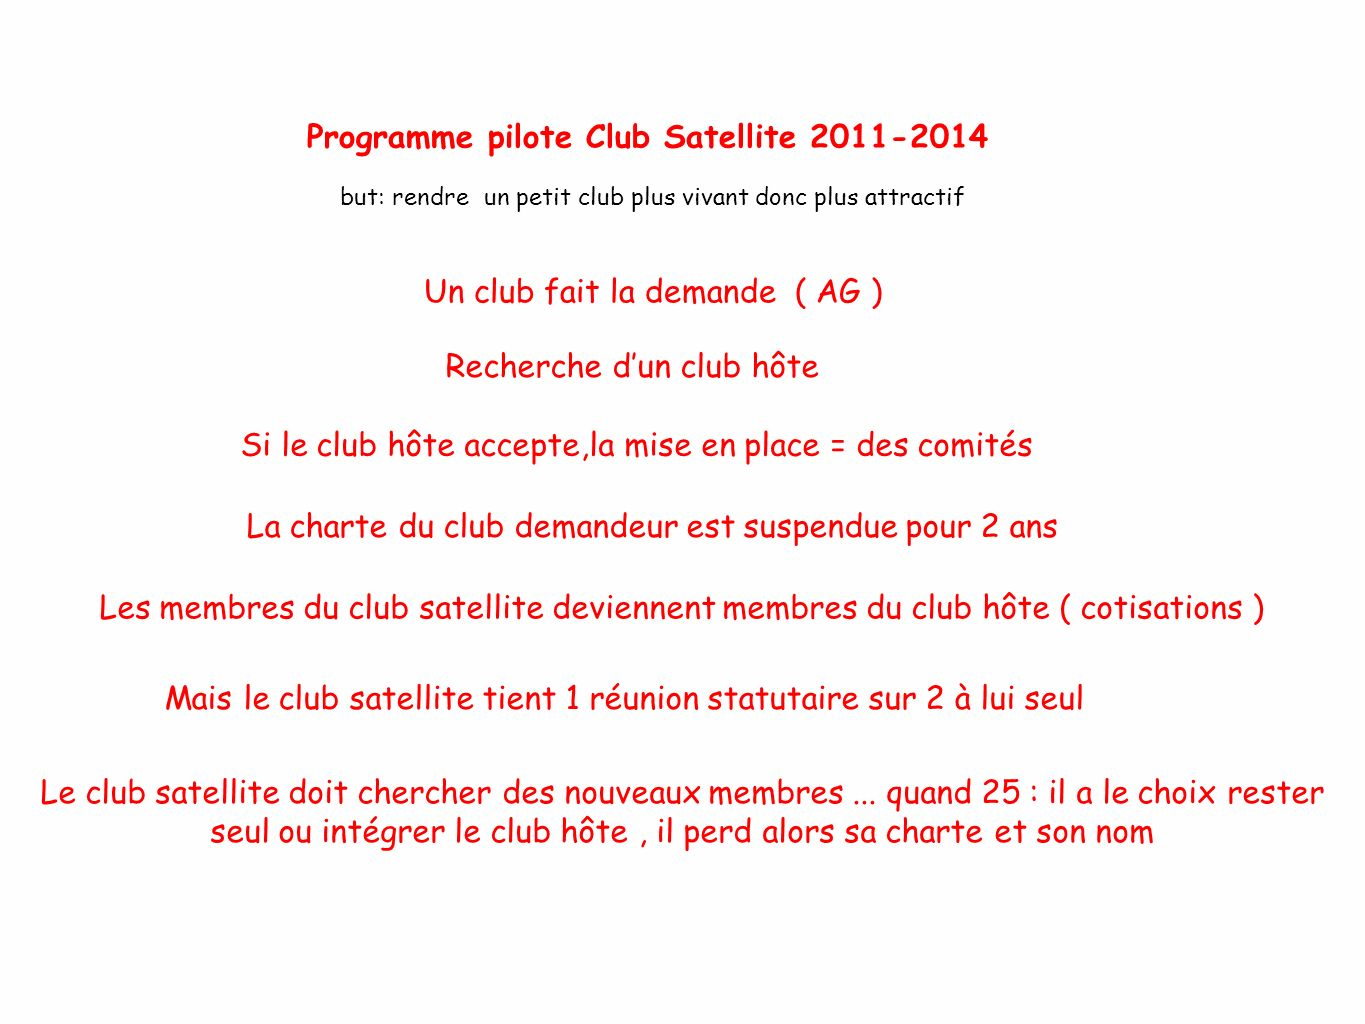 Programme pilote Club Satellite 2011-2014